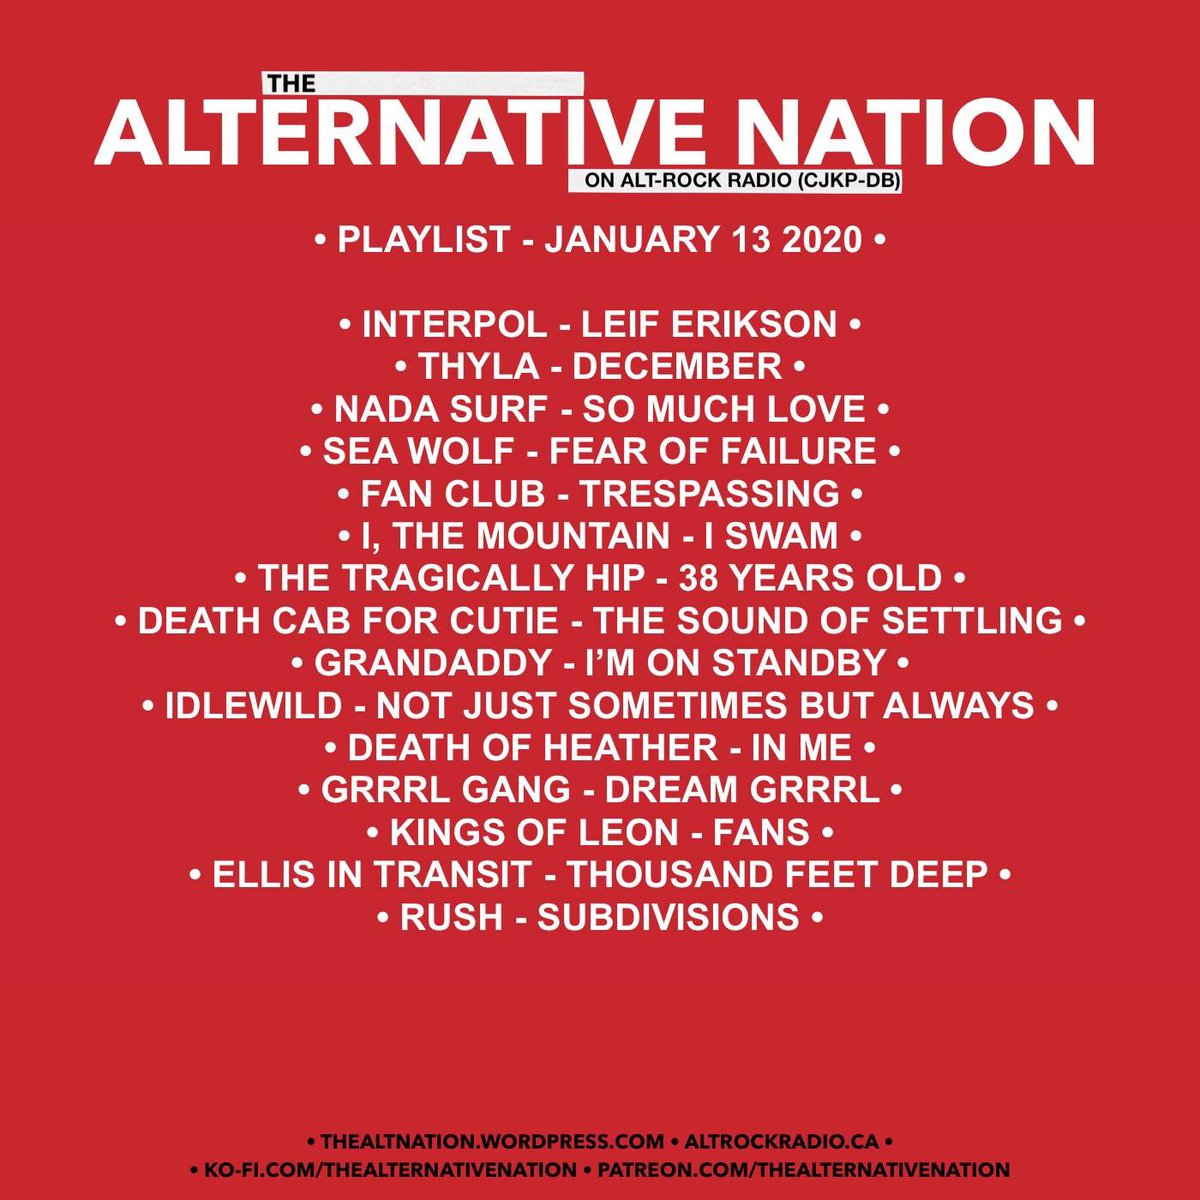 The Alternative Nation on @altrockradioca • Playlist - January 13 2020. Missed the show or want to listen back? The show is now available to stream on Mixcloud. #playlist #radio #radioshow #Canada #yourfmalternative #alternative #indie #indiemusic #mixcloudpic.twitter.com/tVUI4JG99y